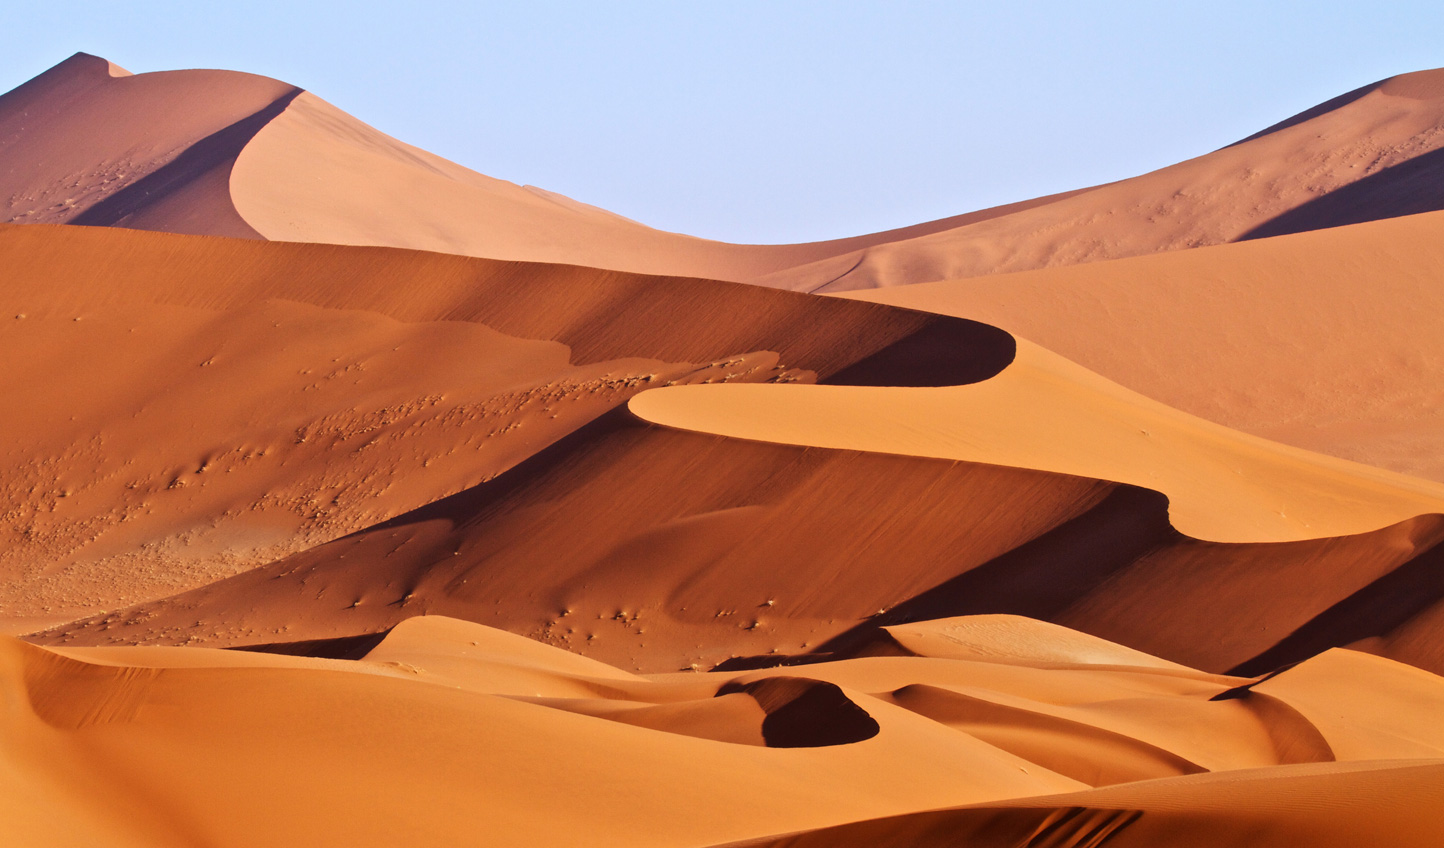 The incessant rolling red dunes of the Namibian Sand Sea are a sight like no other